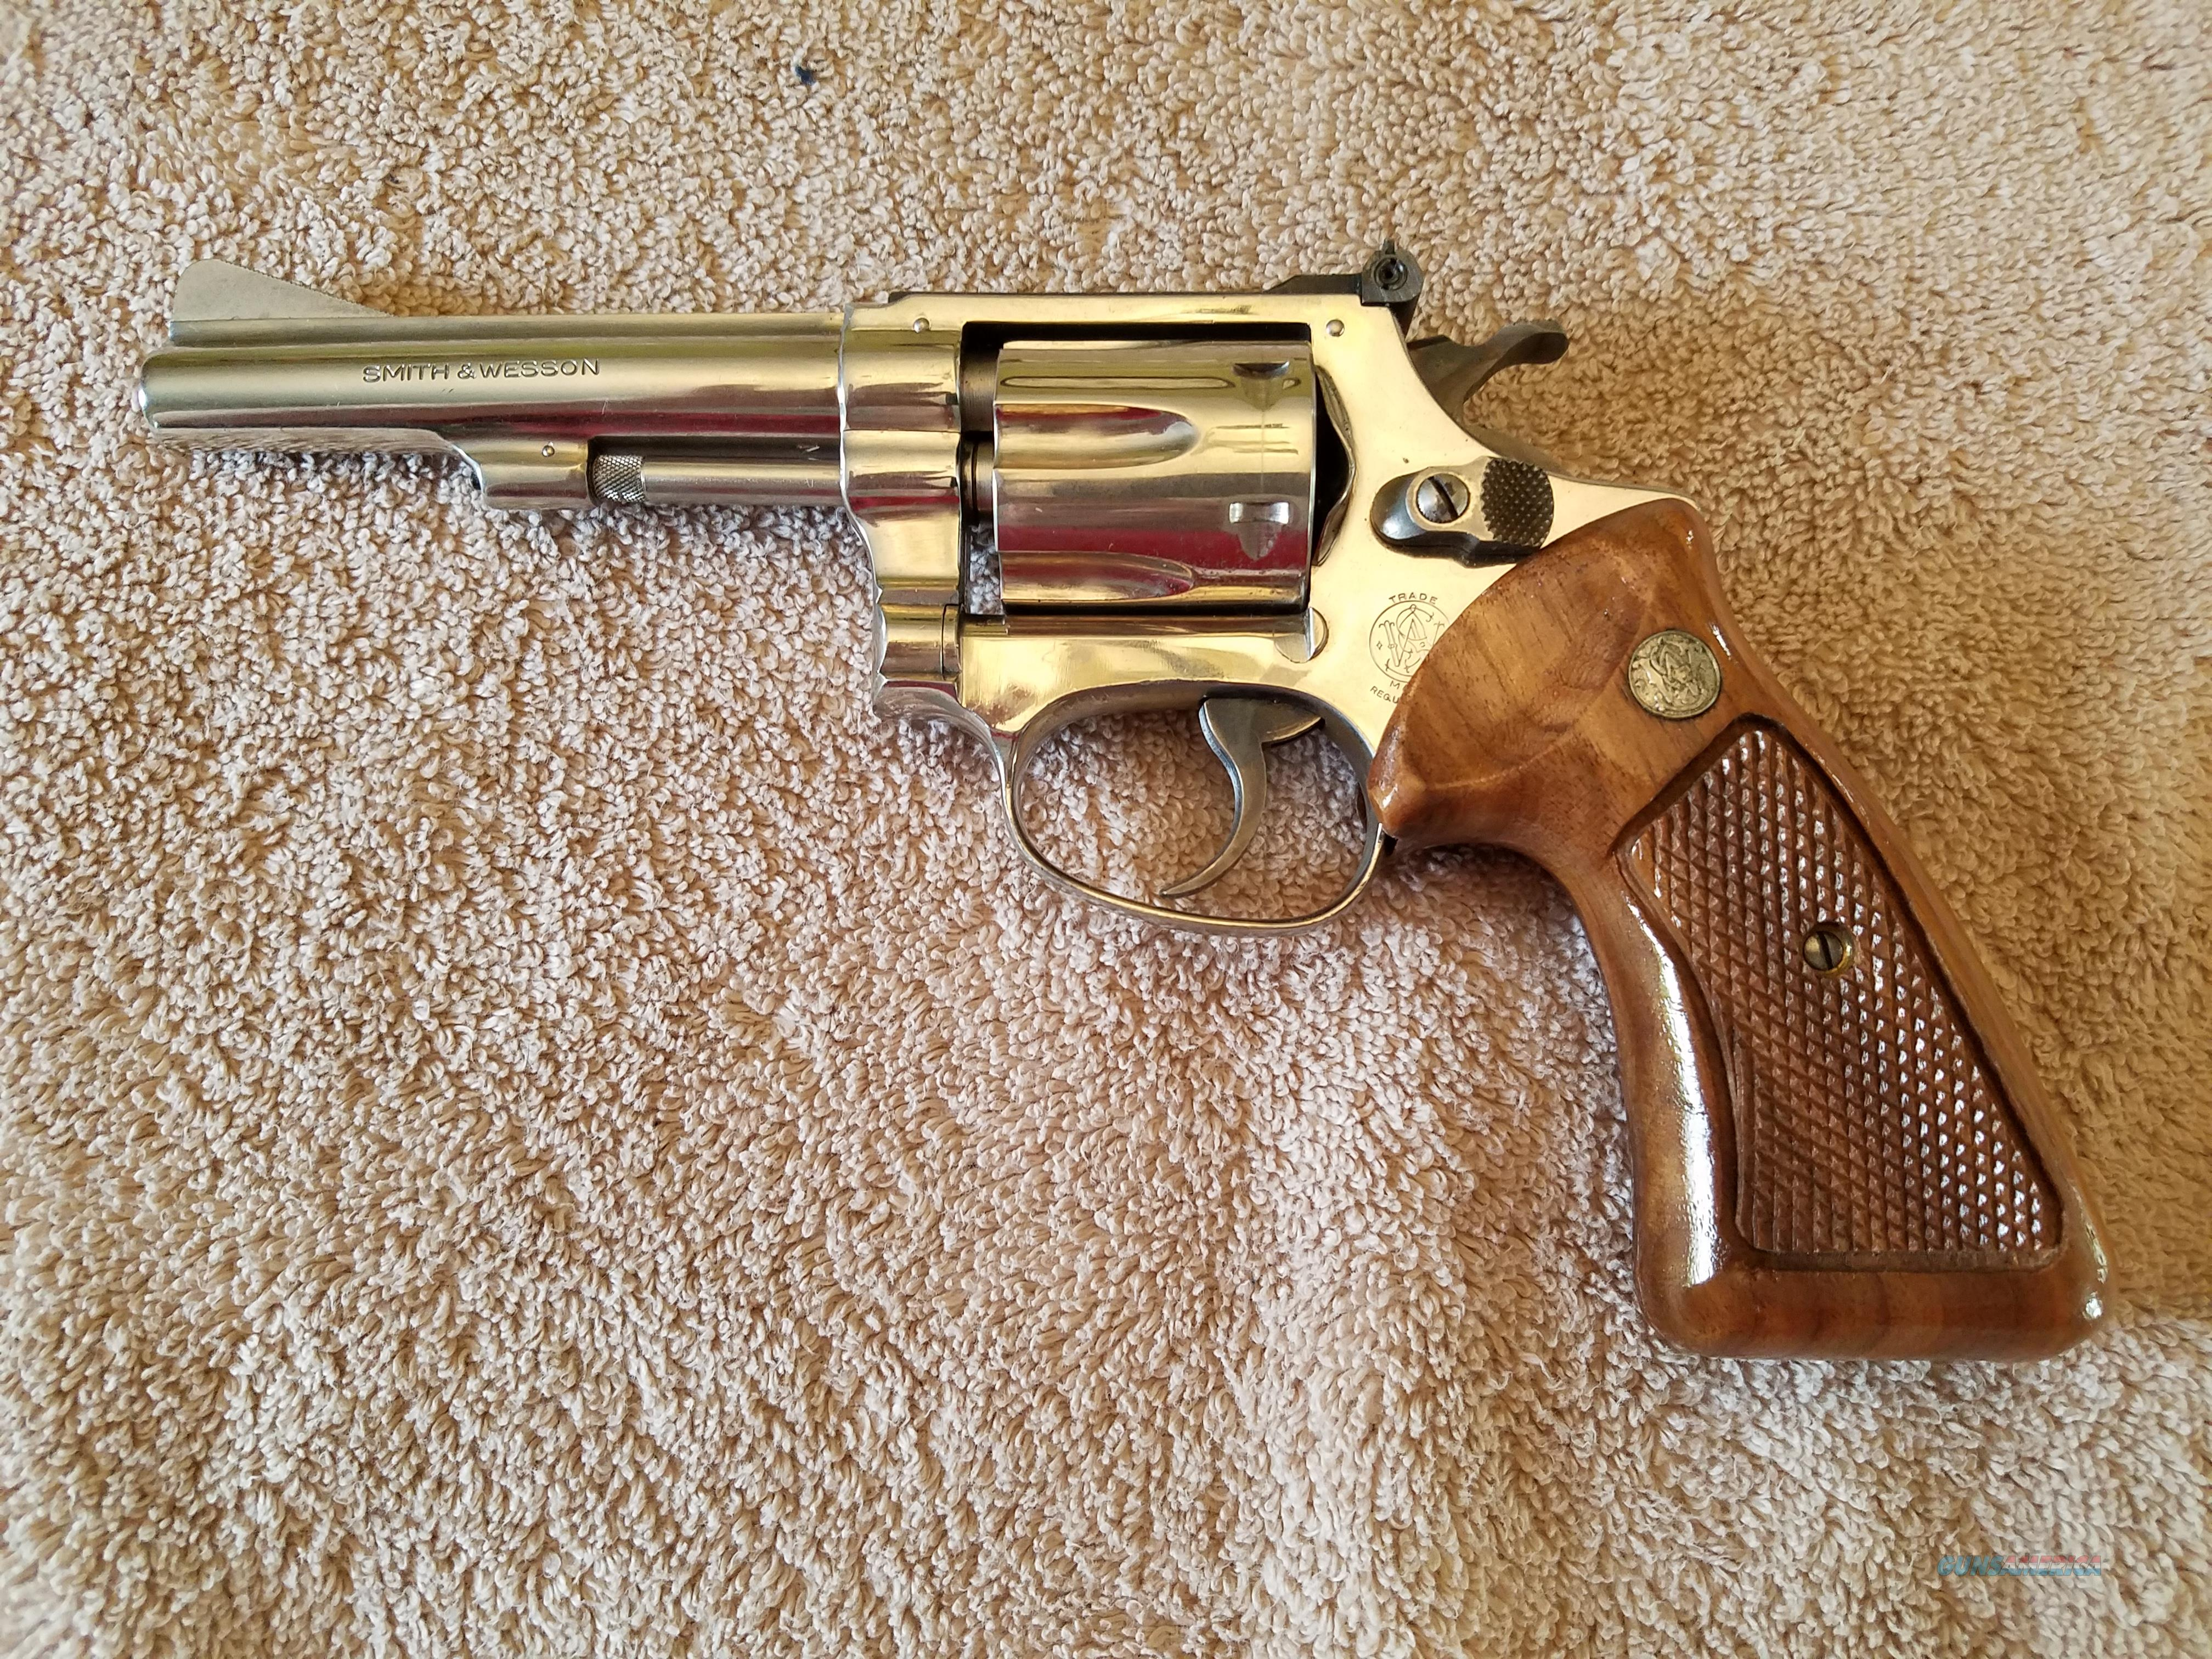 Smith & Wesson revolver model 34-1, 22 Long Rifle  Guns > Pistols > Smith & Wesson Revolvers > Full Frame Revolver